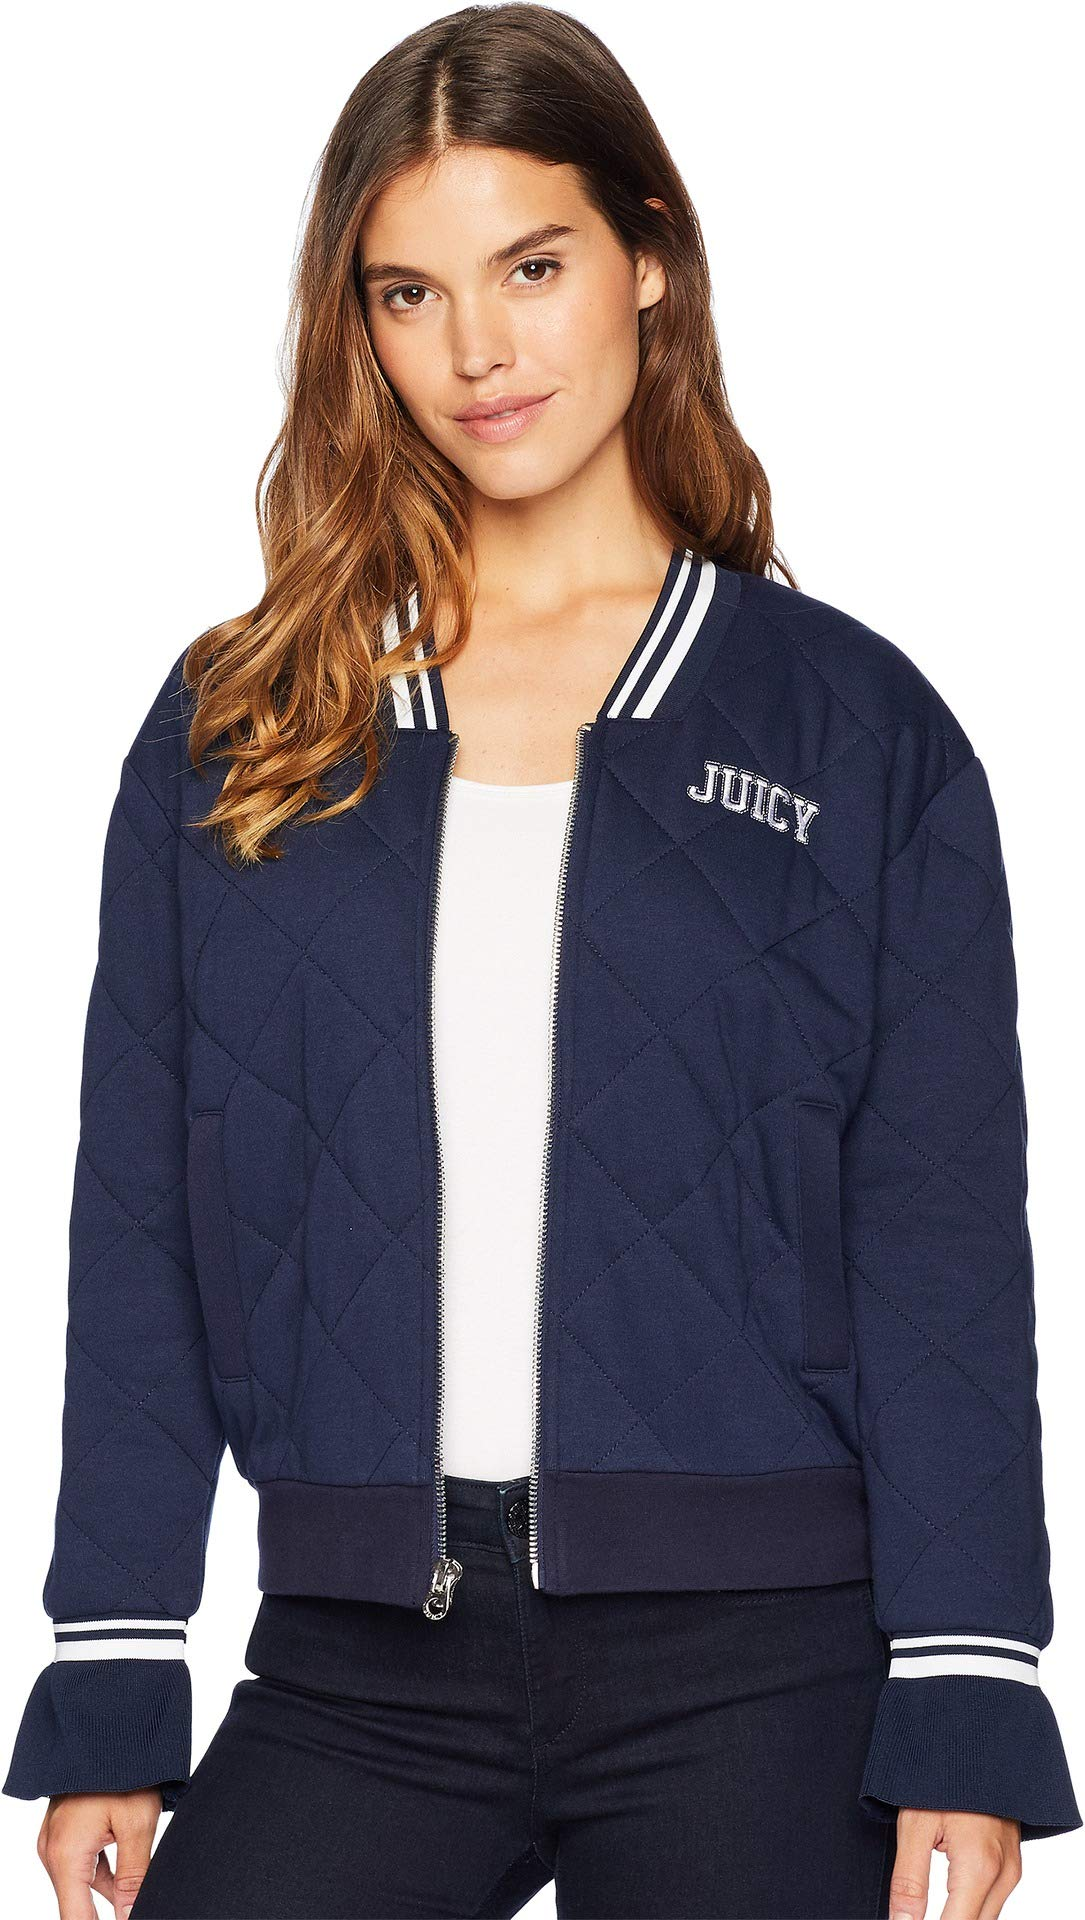 Juicy Couture Women's Quilted Terry Bomber Jacket Regal Petite/X-Small